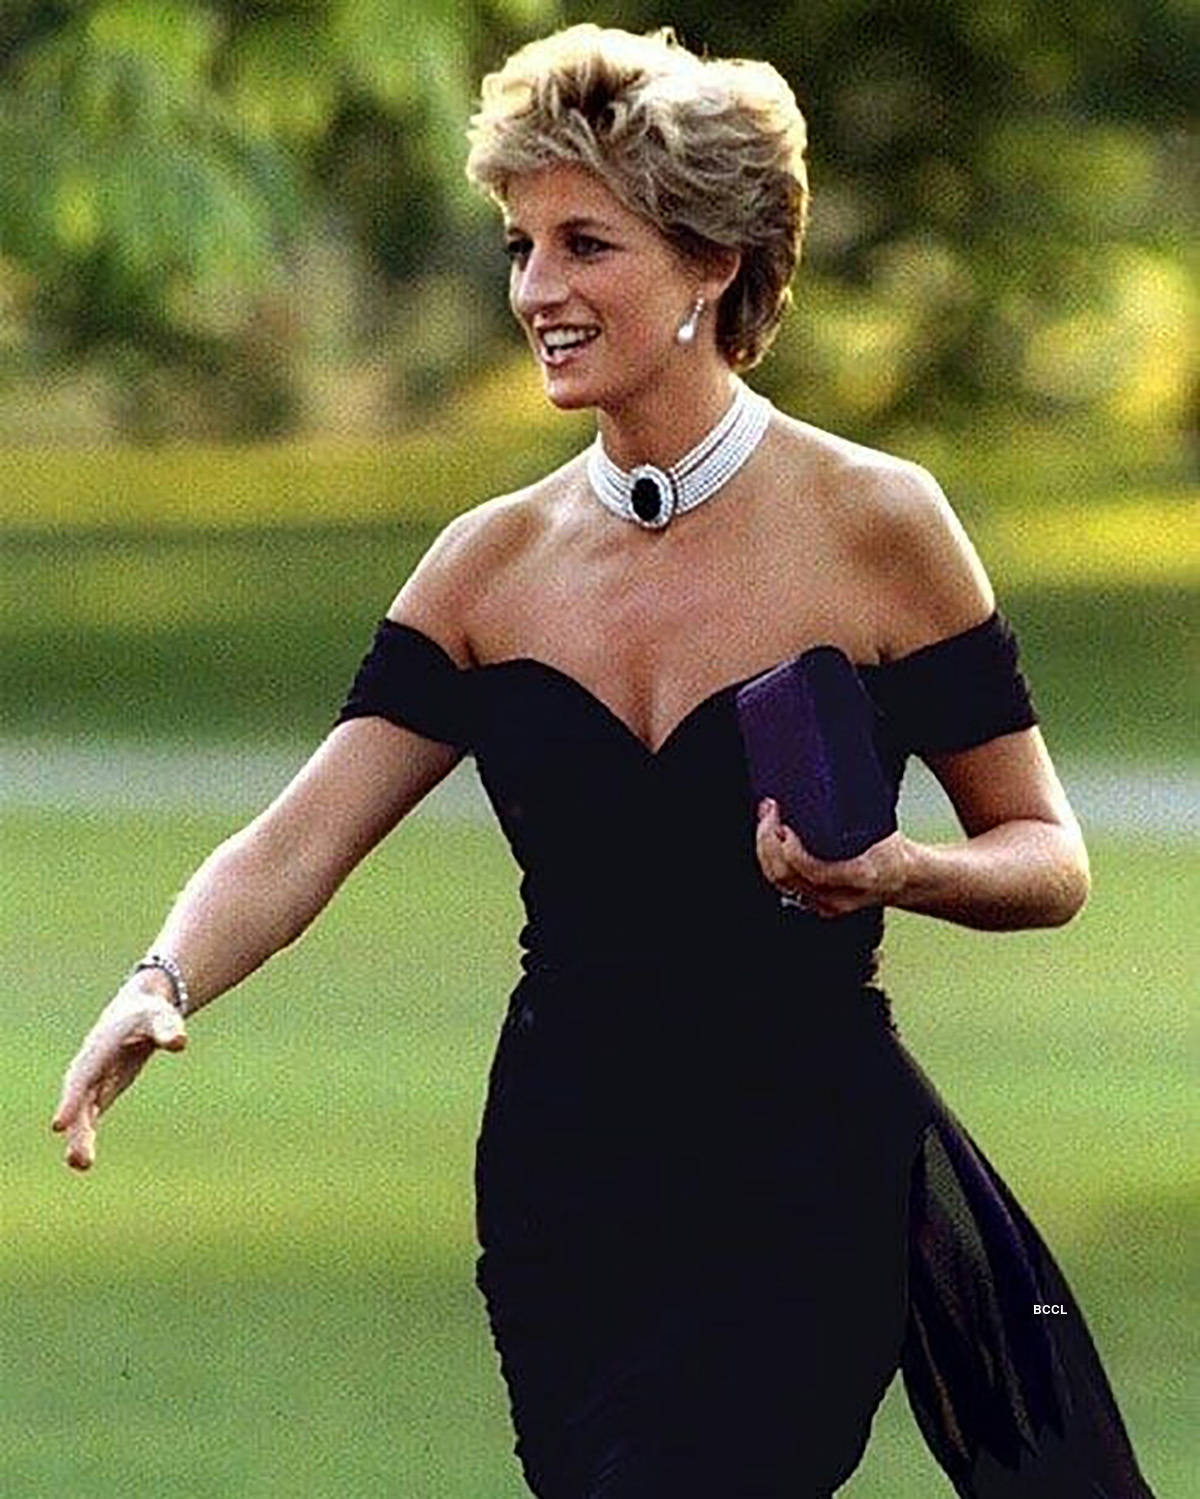 Princess Diana's iconic blue velvet evening gown that she wore to dance with Travolta is now up for auction